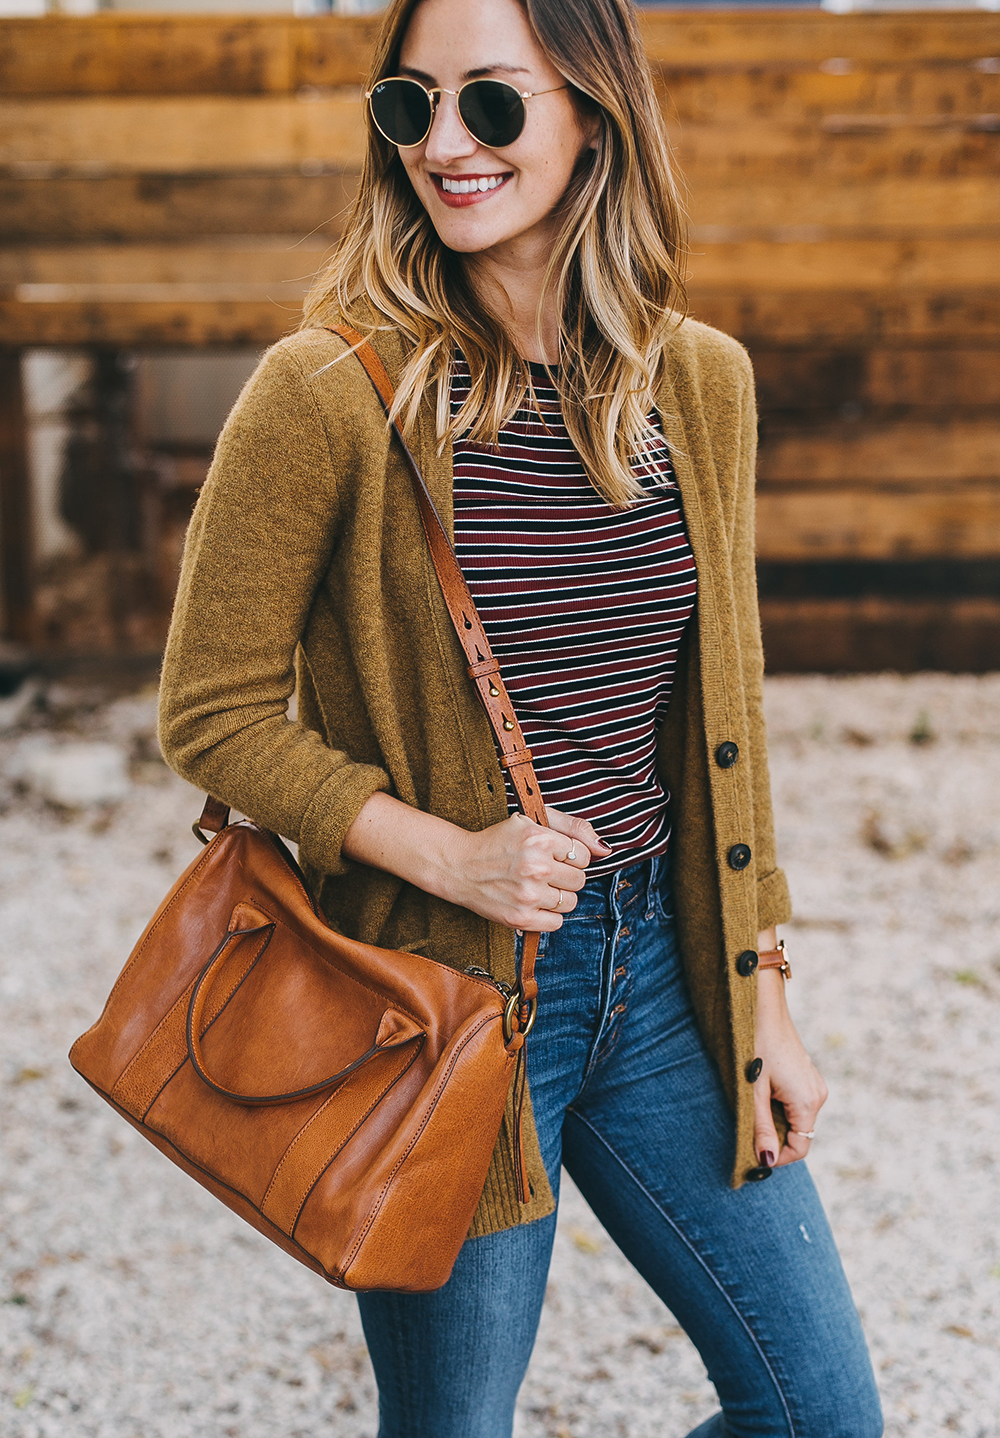 livvyland-blog-olivia-watson-austin-texas-fashion-lifestyle-blogger-madewell-grandpa-cardigan-button-up-high-rise-skinny-jeans-tan-leather-slides-fall-outfit-style-idea-6